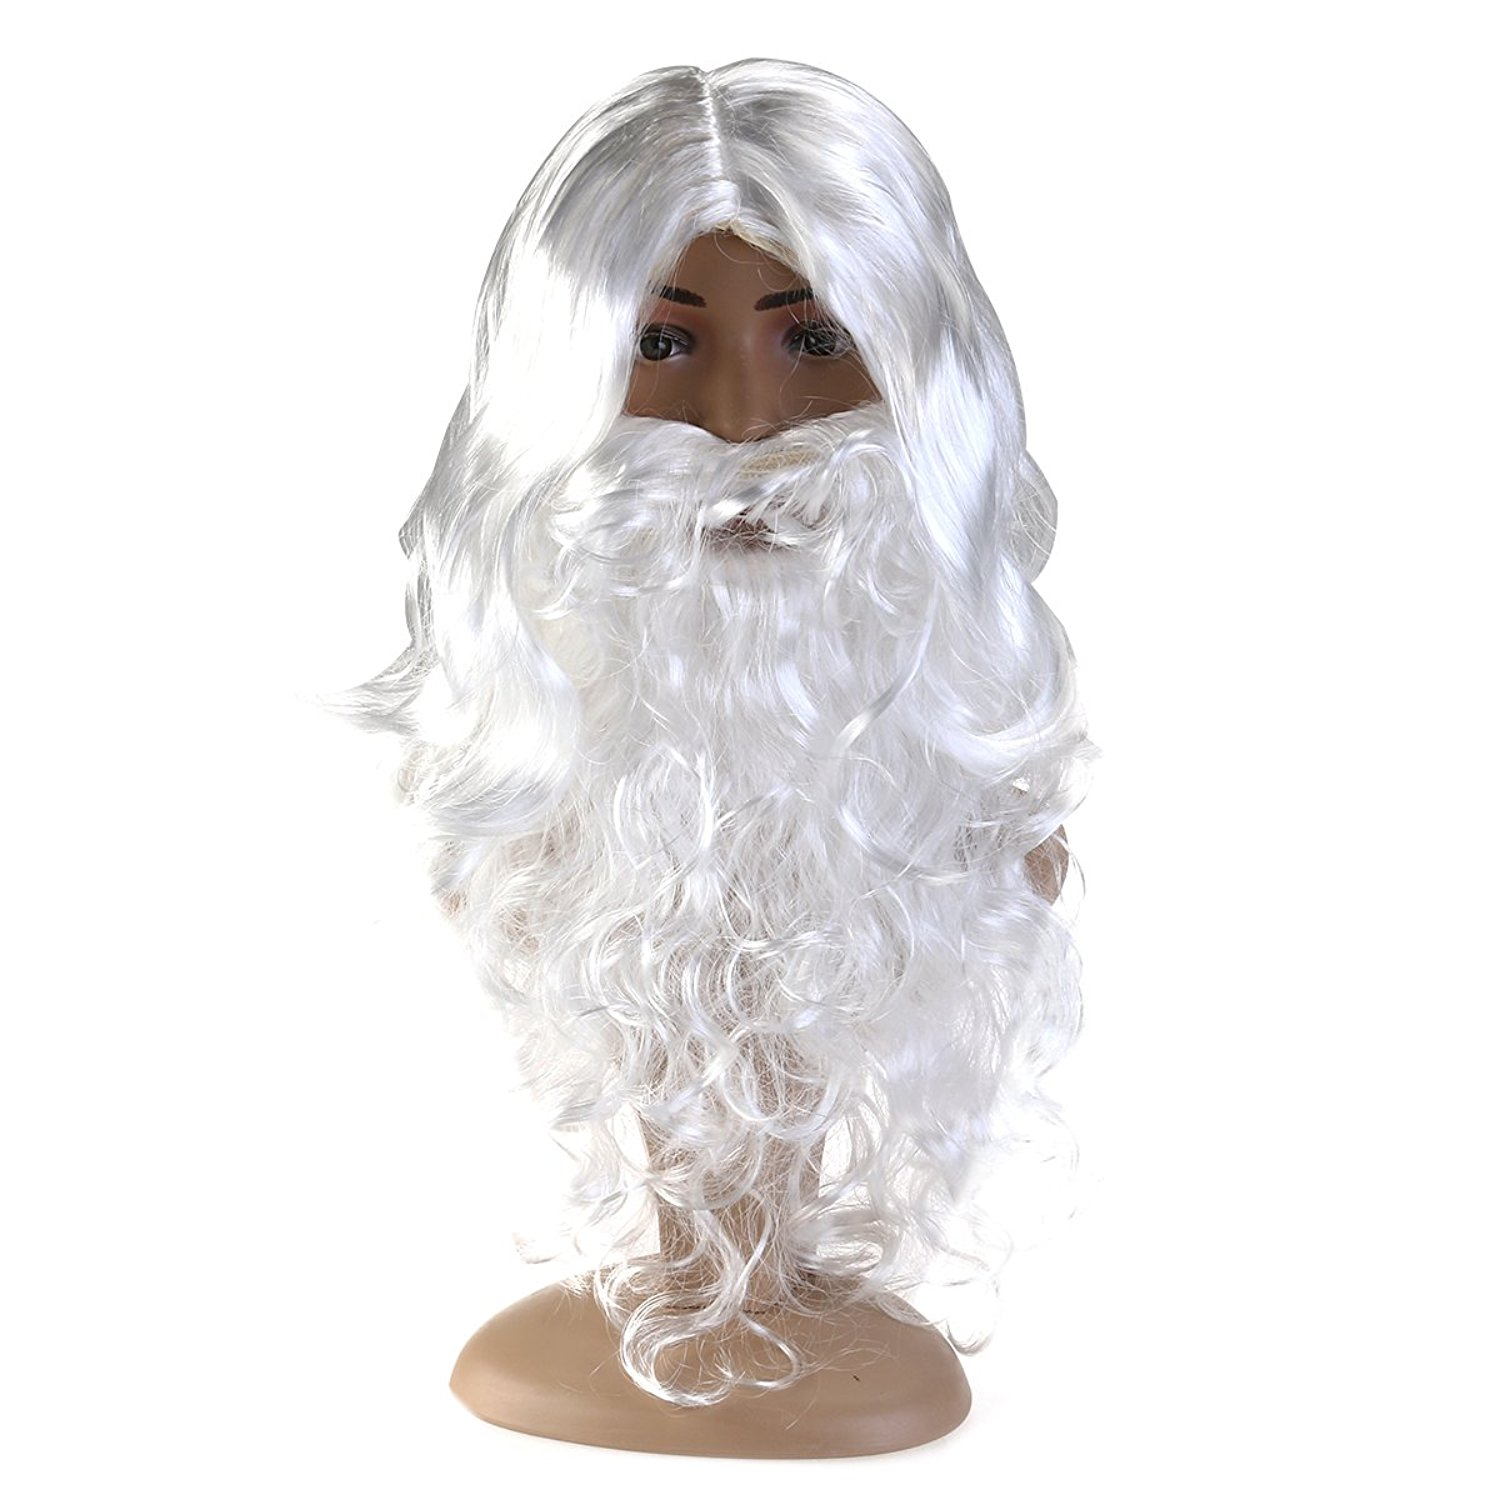 Fenical Christmas Santa Wig and Beard Set White Long Curly Hair